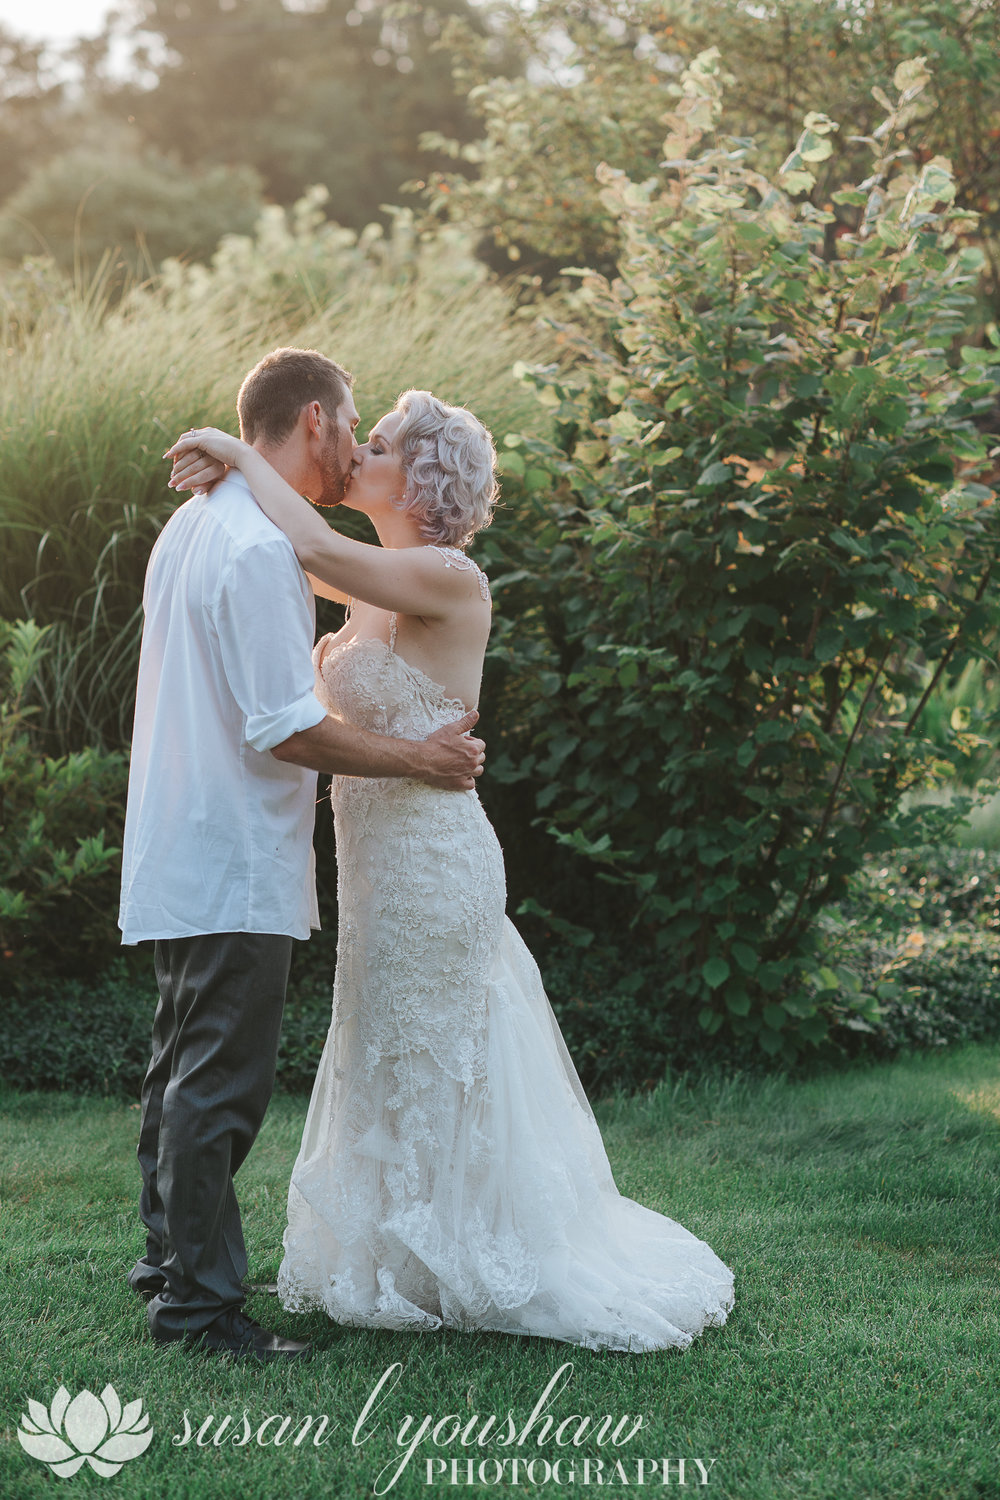 BLOG Kissy and Zane Diehl 07-14-2018 SLY Photography-176.jpg